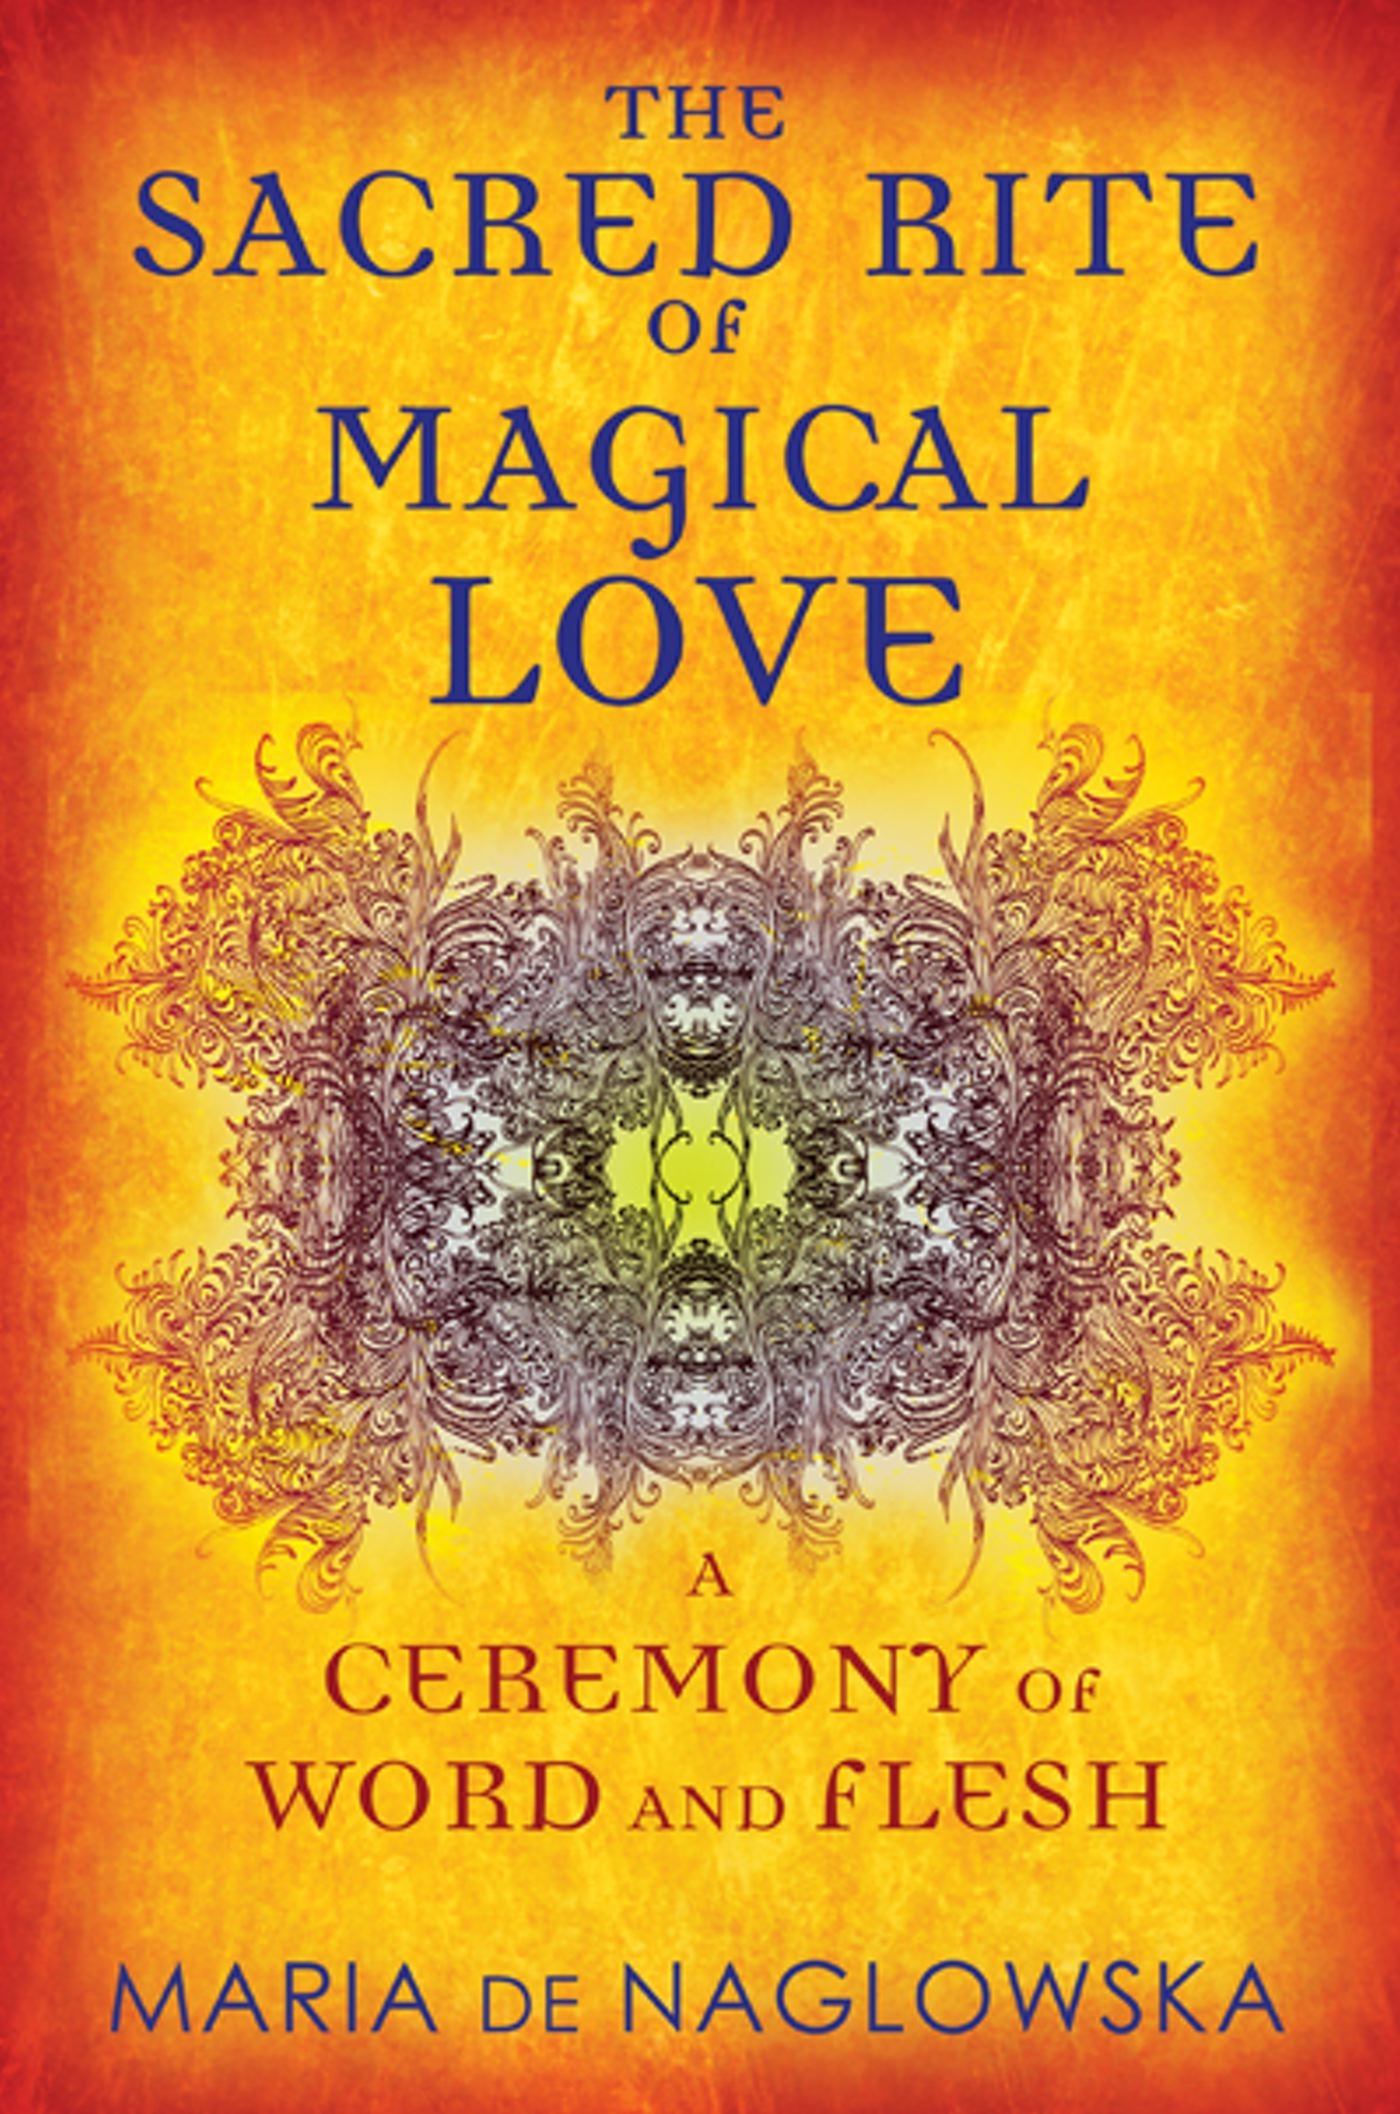 The-sacred-rite-of-magical-love-9781594774171_hr